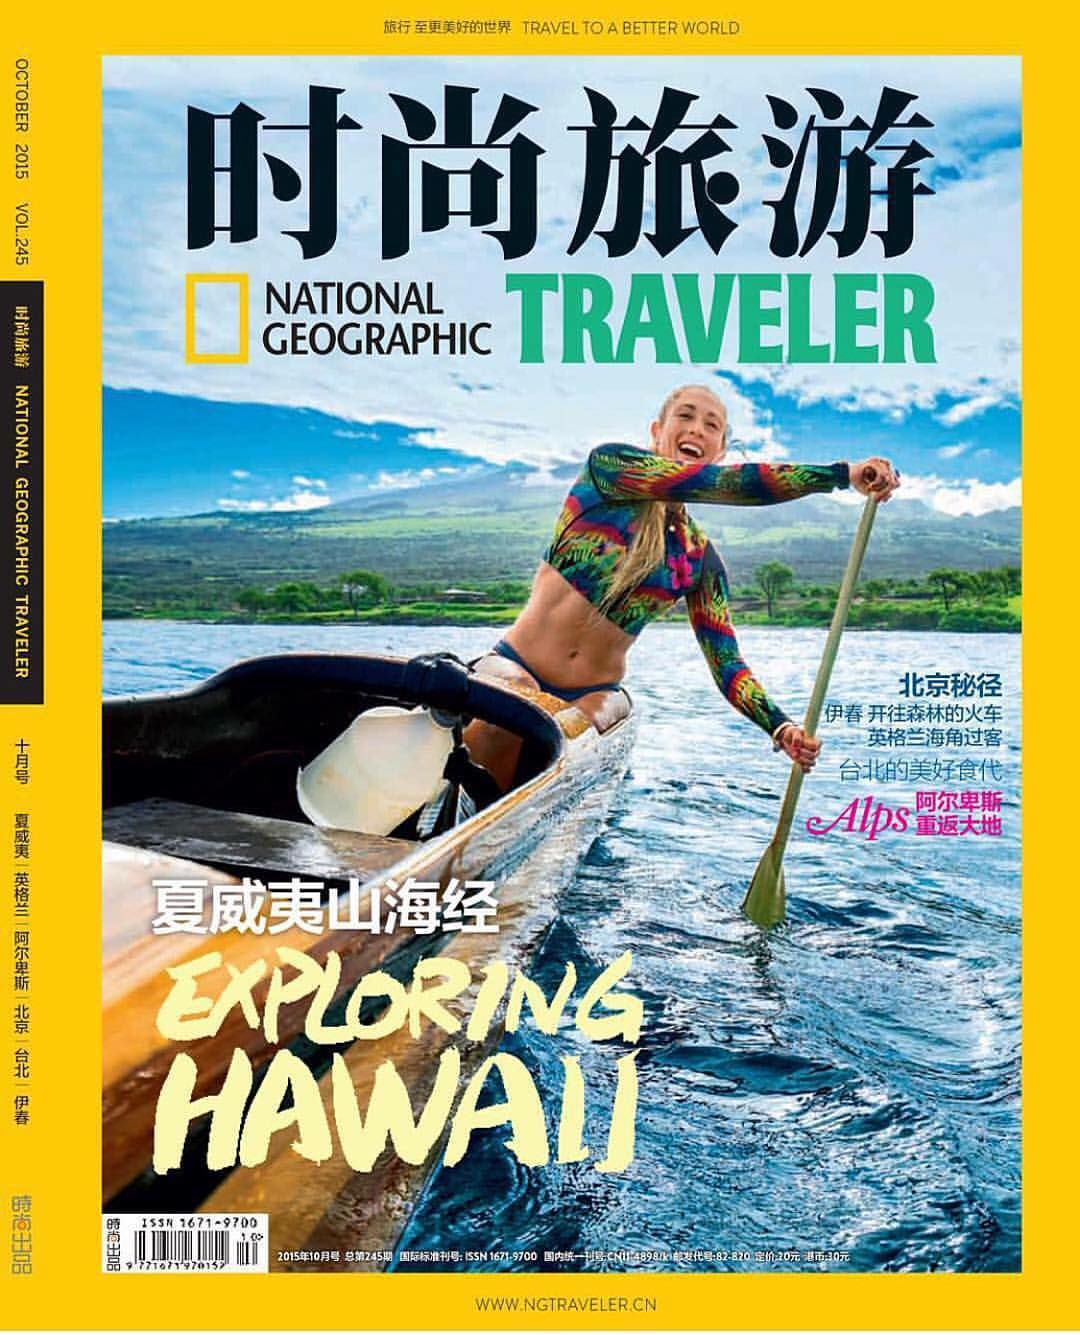 Way to steer that canoe on to the cover of @natgeotravel @ashbax808 #honored! Now that's a bamboo paddle, our original bamboo shaft and molded wood blade holding firm. Not bad for 16ounces and no fiberglass. #naturescarbonfiber  #bamboopaddle #natgeo...